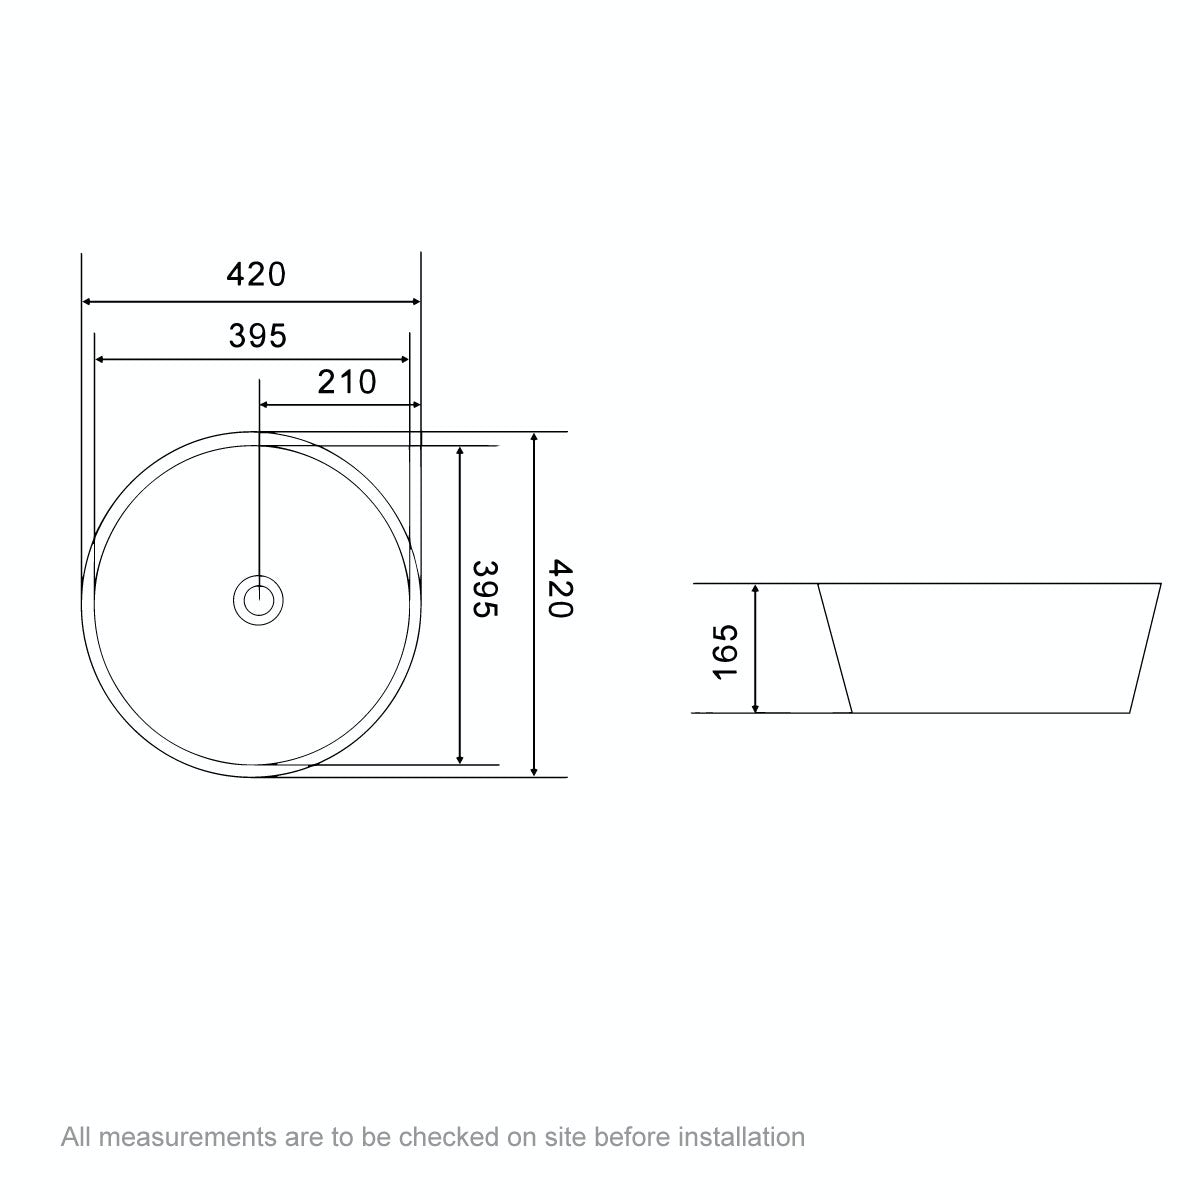 Dimensions for Orchard Derwent round countertop basin 405mm